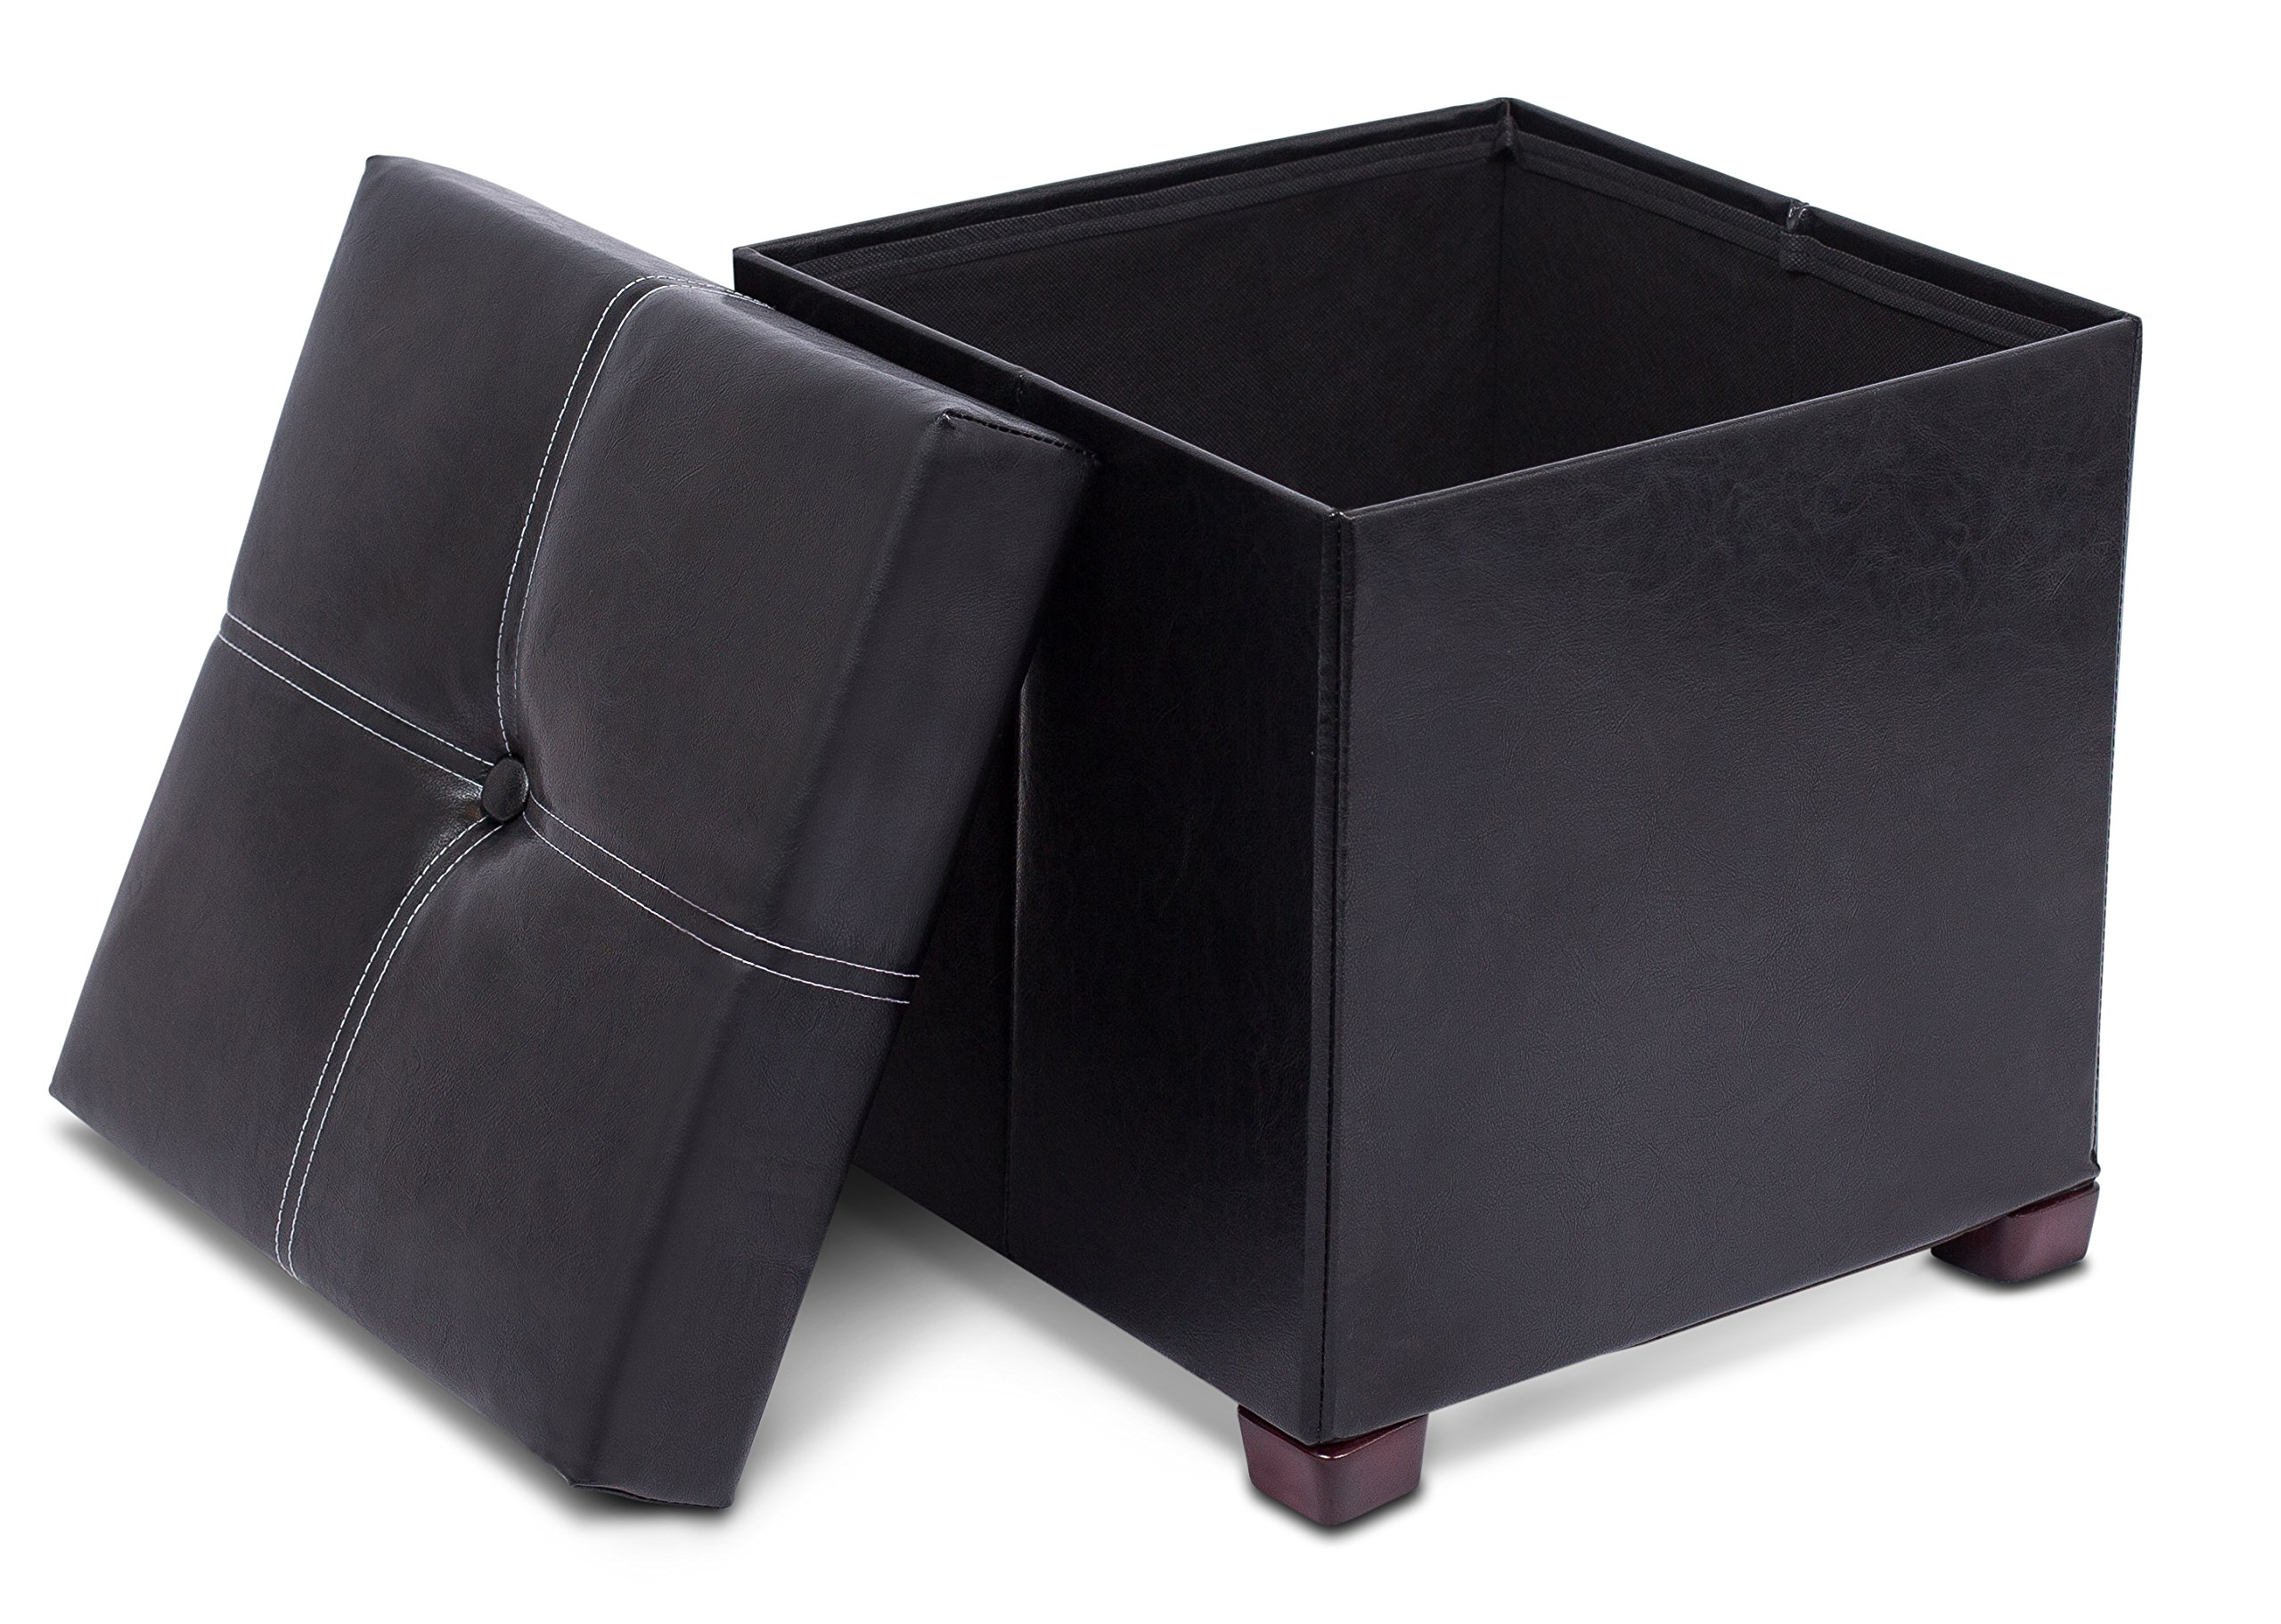 BirdRock Home Faux Leather Storage Ottoman with Legs | 16 x 16 | Foot Stool with Organizer | Upholstered Cushioned Seat | Black